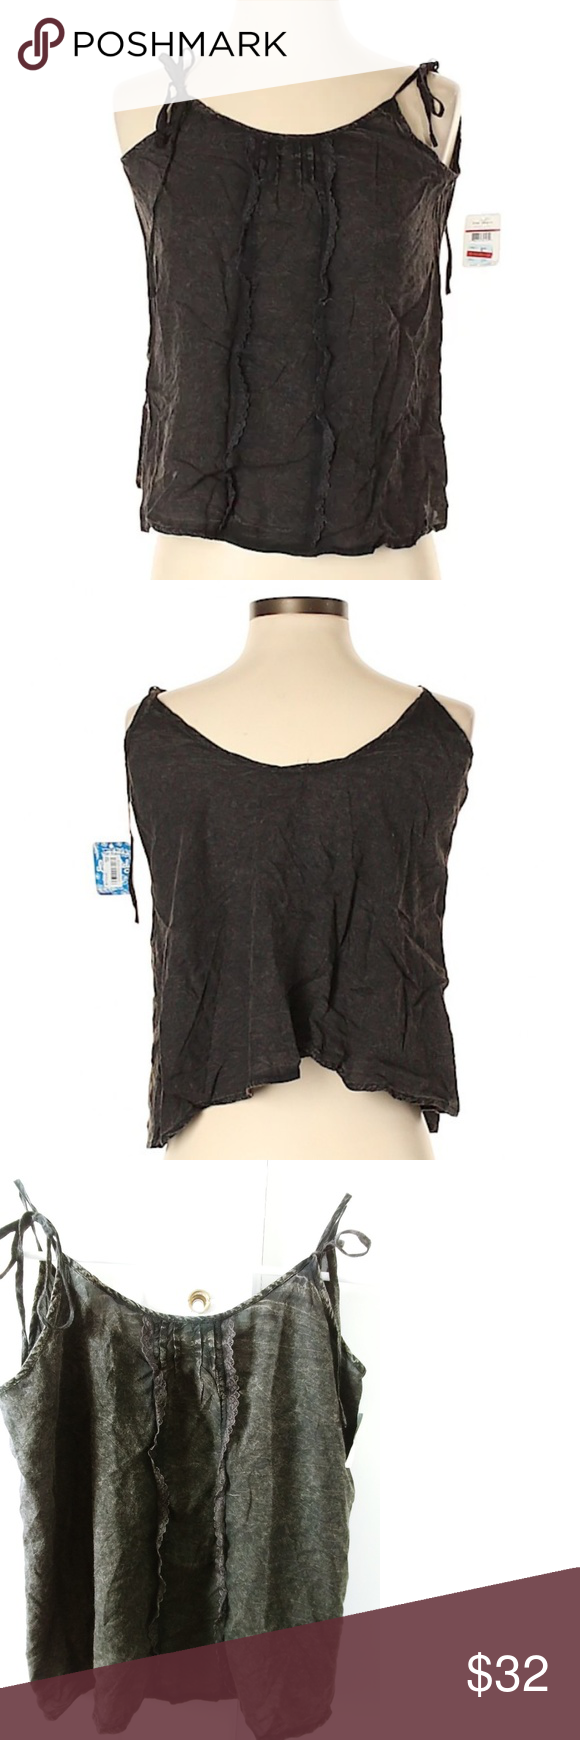 BNWT Free People Tank Top Free People Intimately Tank Top  This Sexy, Light as A…